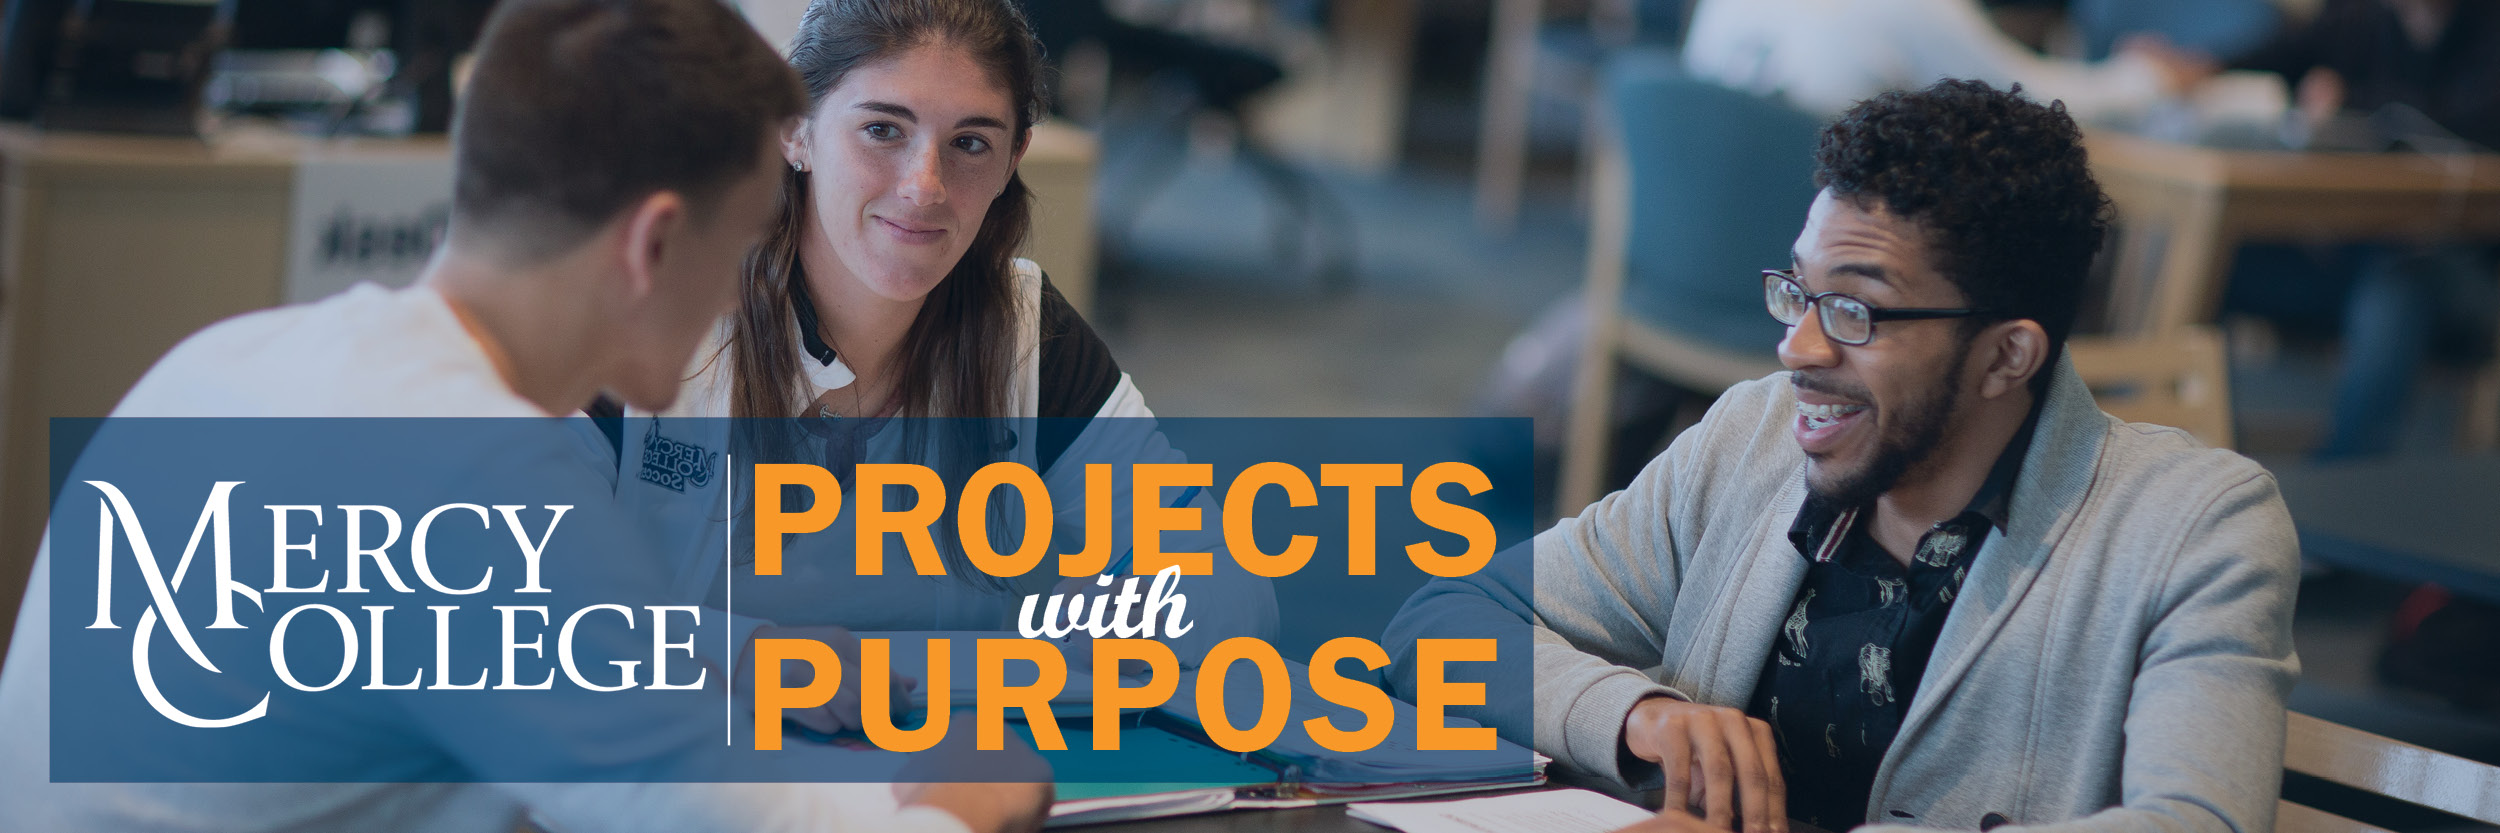 Projects with Purpose